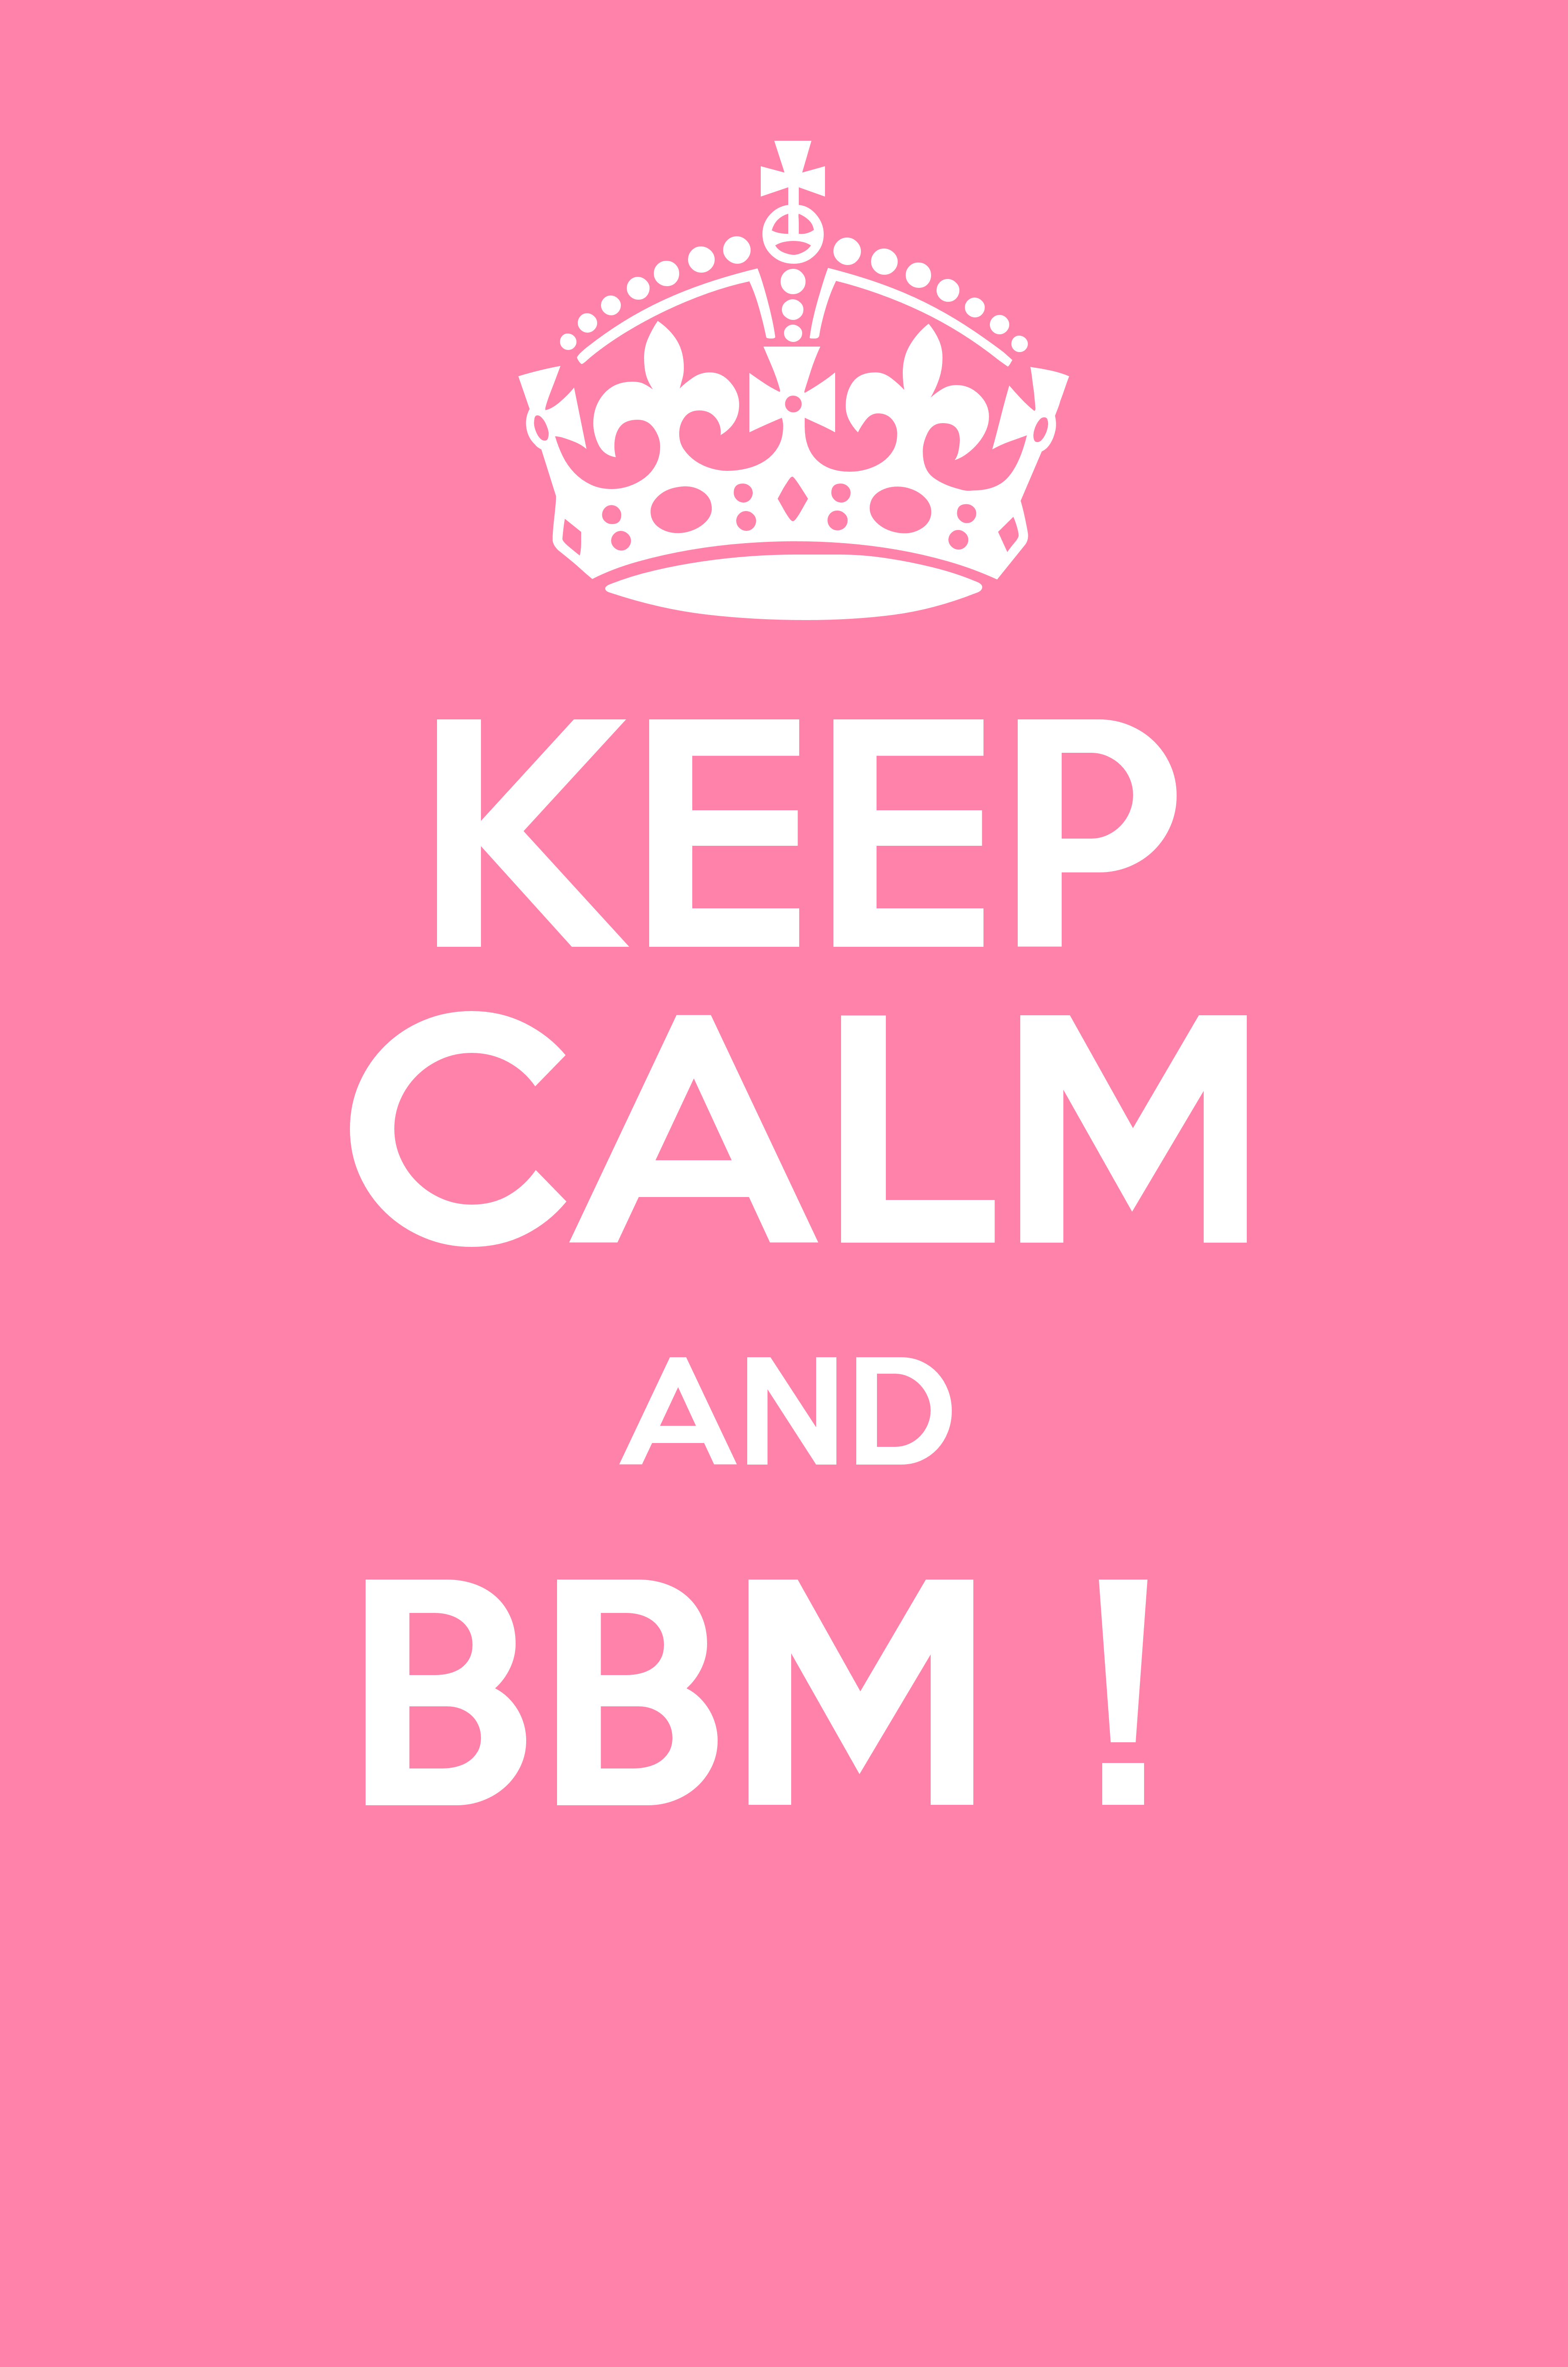 KEEP CALM AND BBM ! Poster